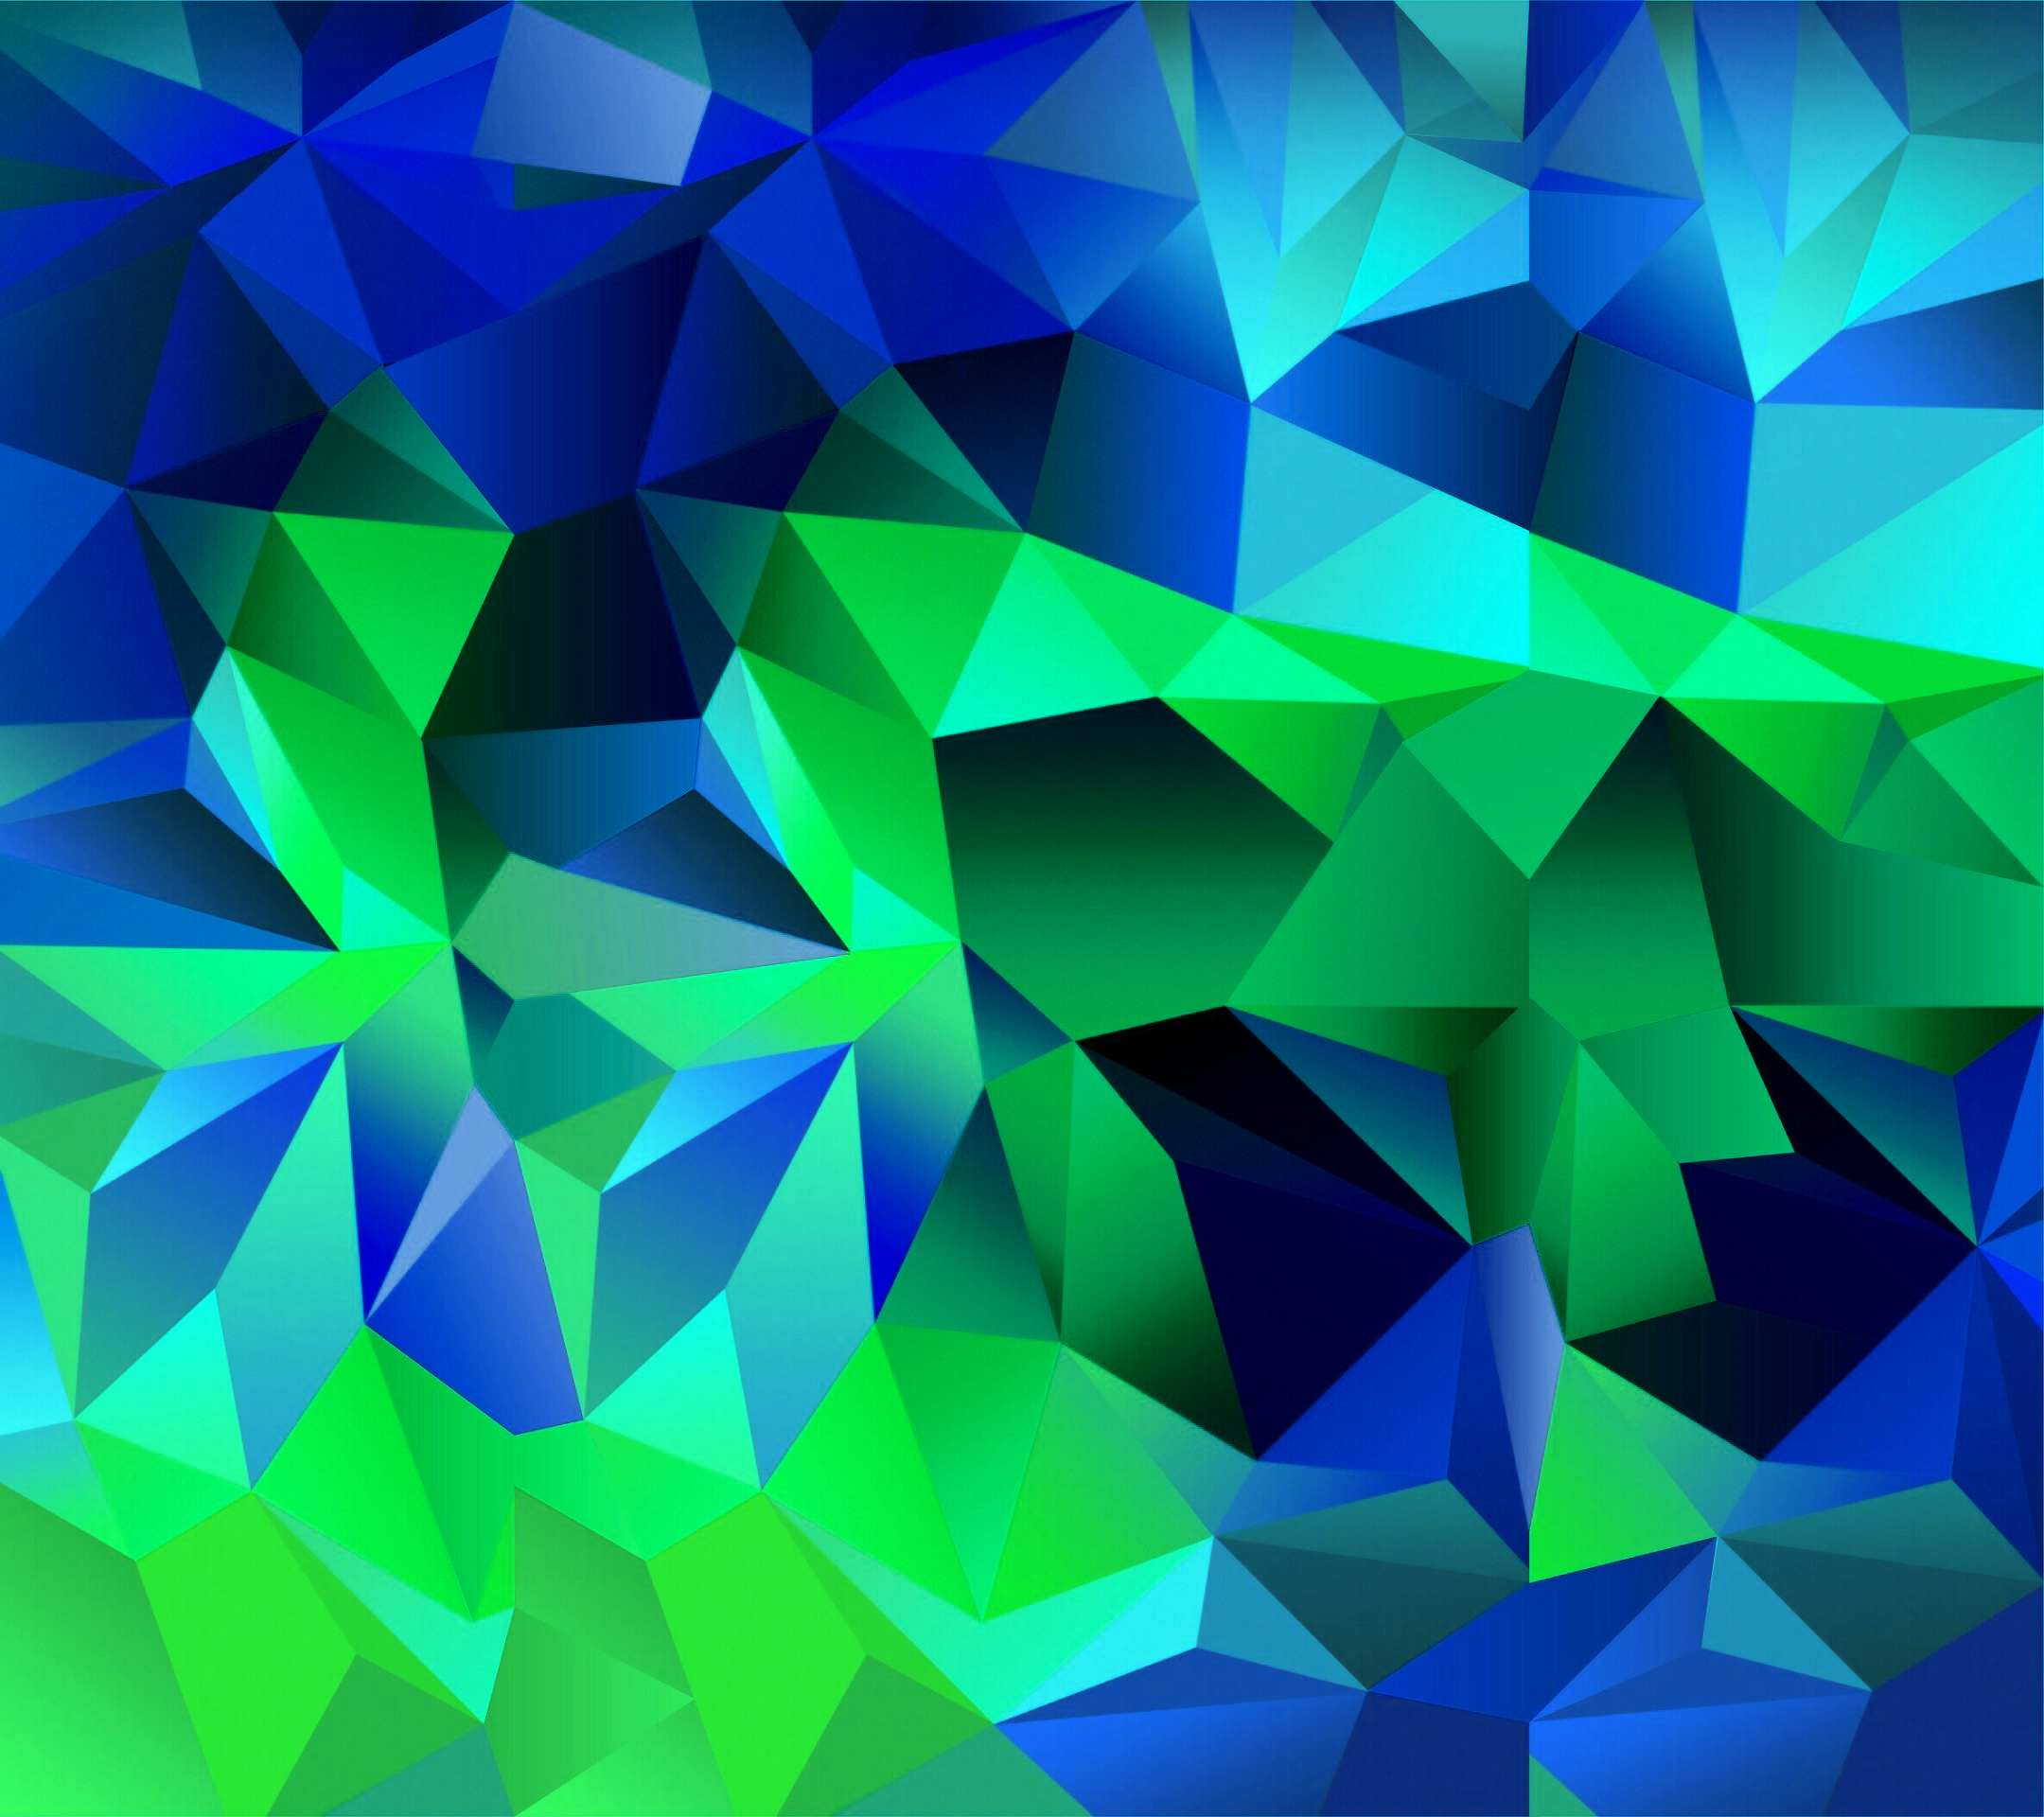 Galaxy S5 Wallpapers Wallpapers for bianoticom 2160x1920